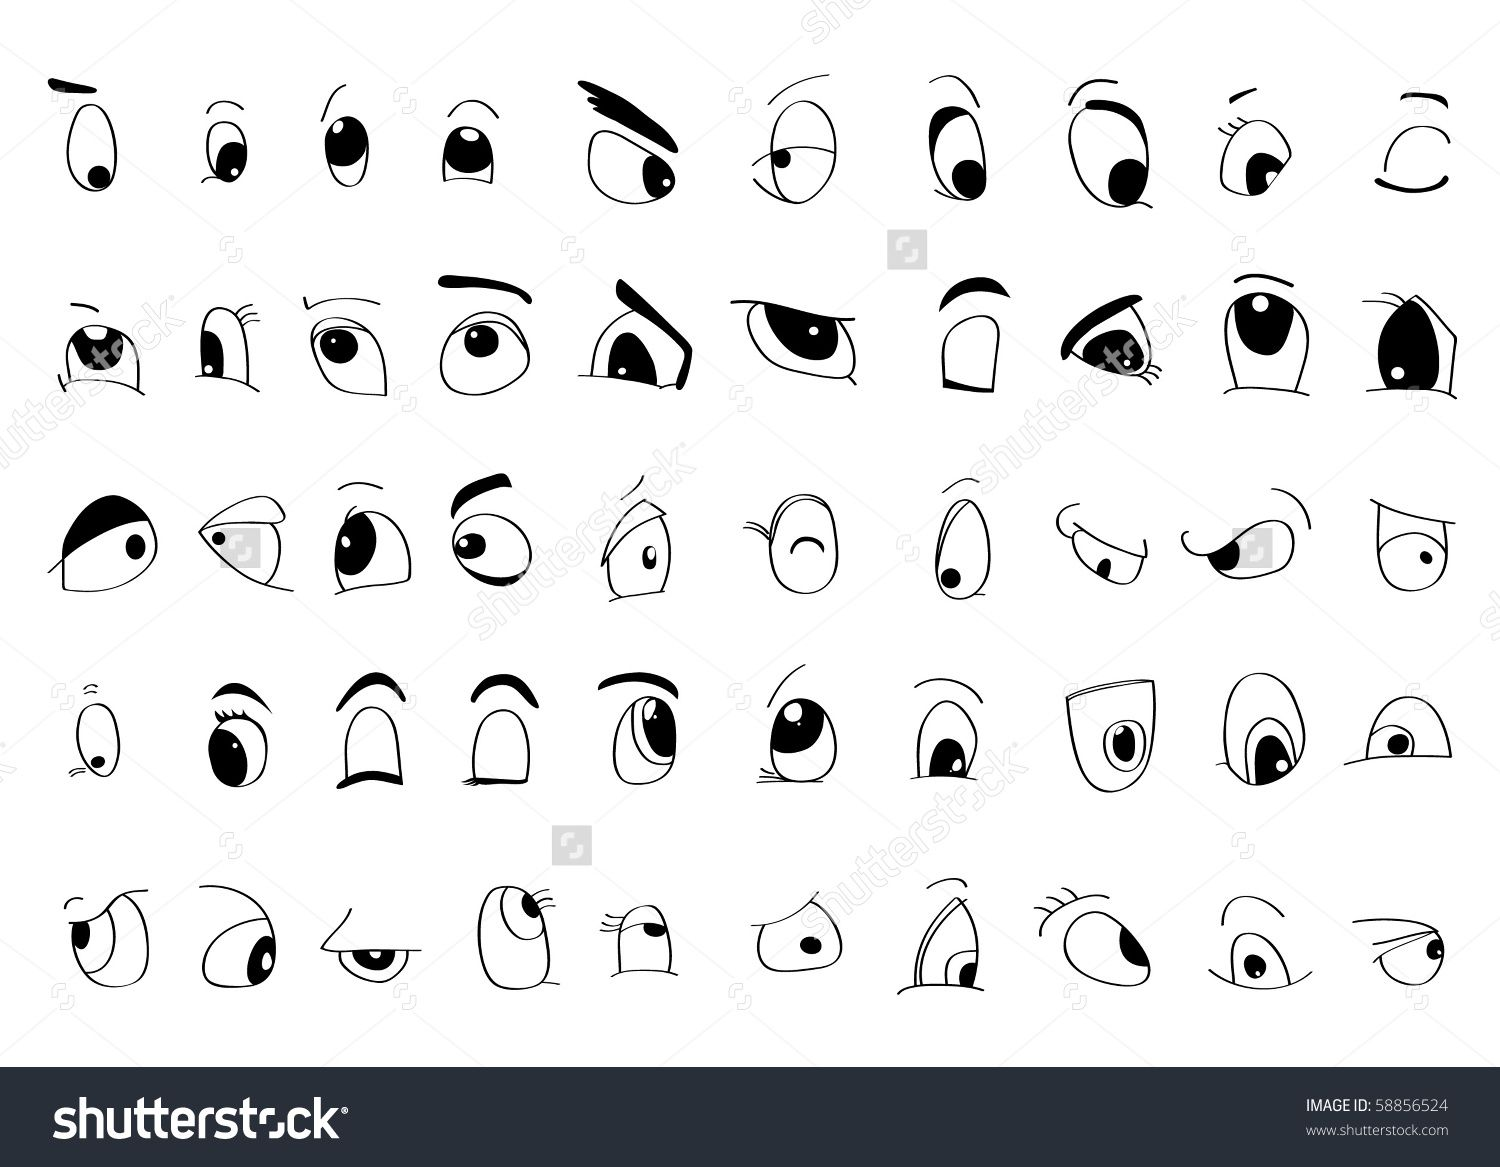 Sample Cartoon Eyes Styles Google Search Cartoon Eyes Cartoon Faces Expressions Cartoon Styles